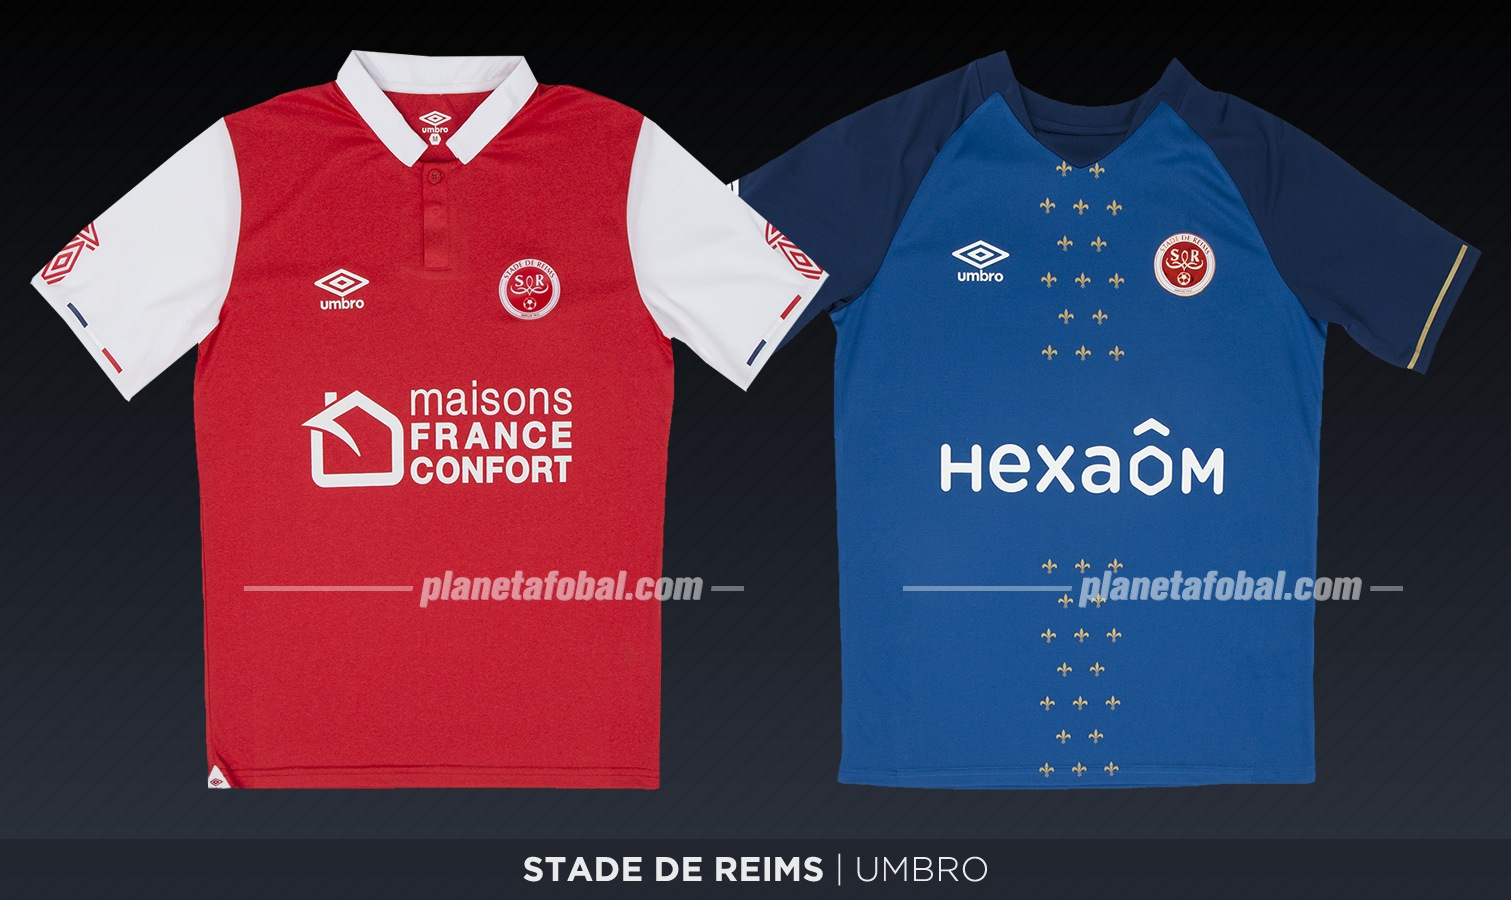 Stade de Reims (Umbro) | Camisetas de la Ligue 1 2019-2020